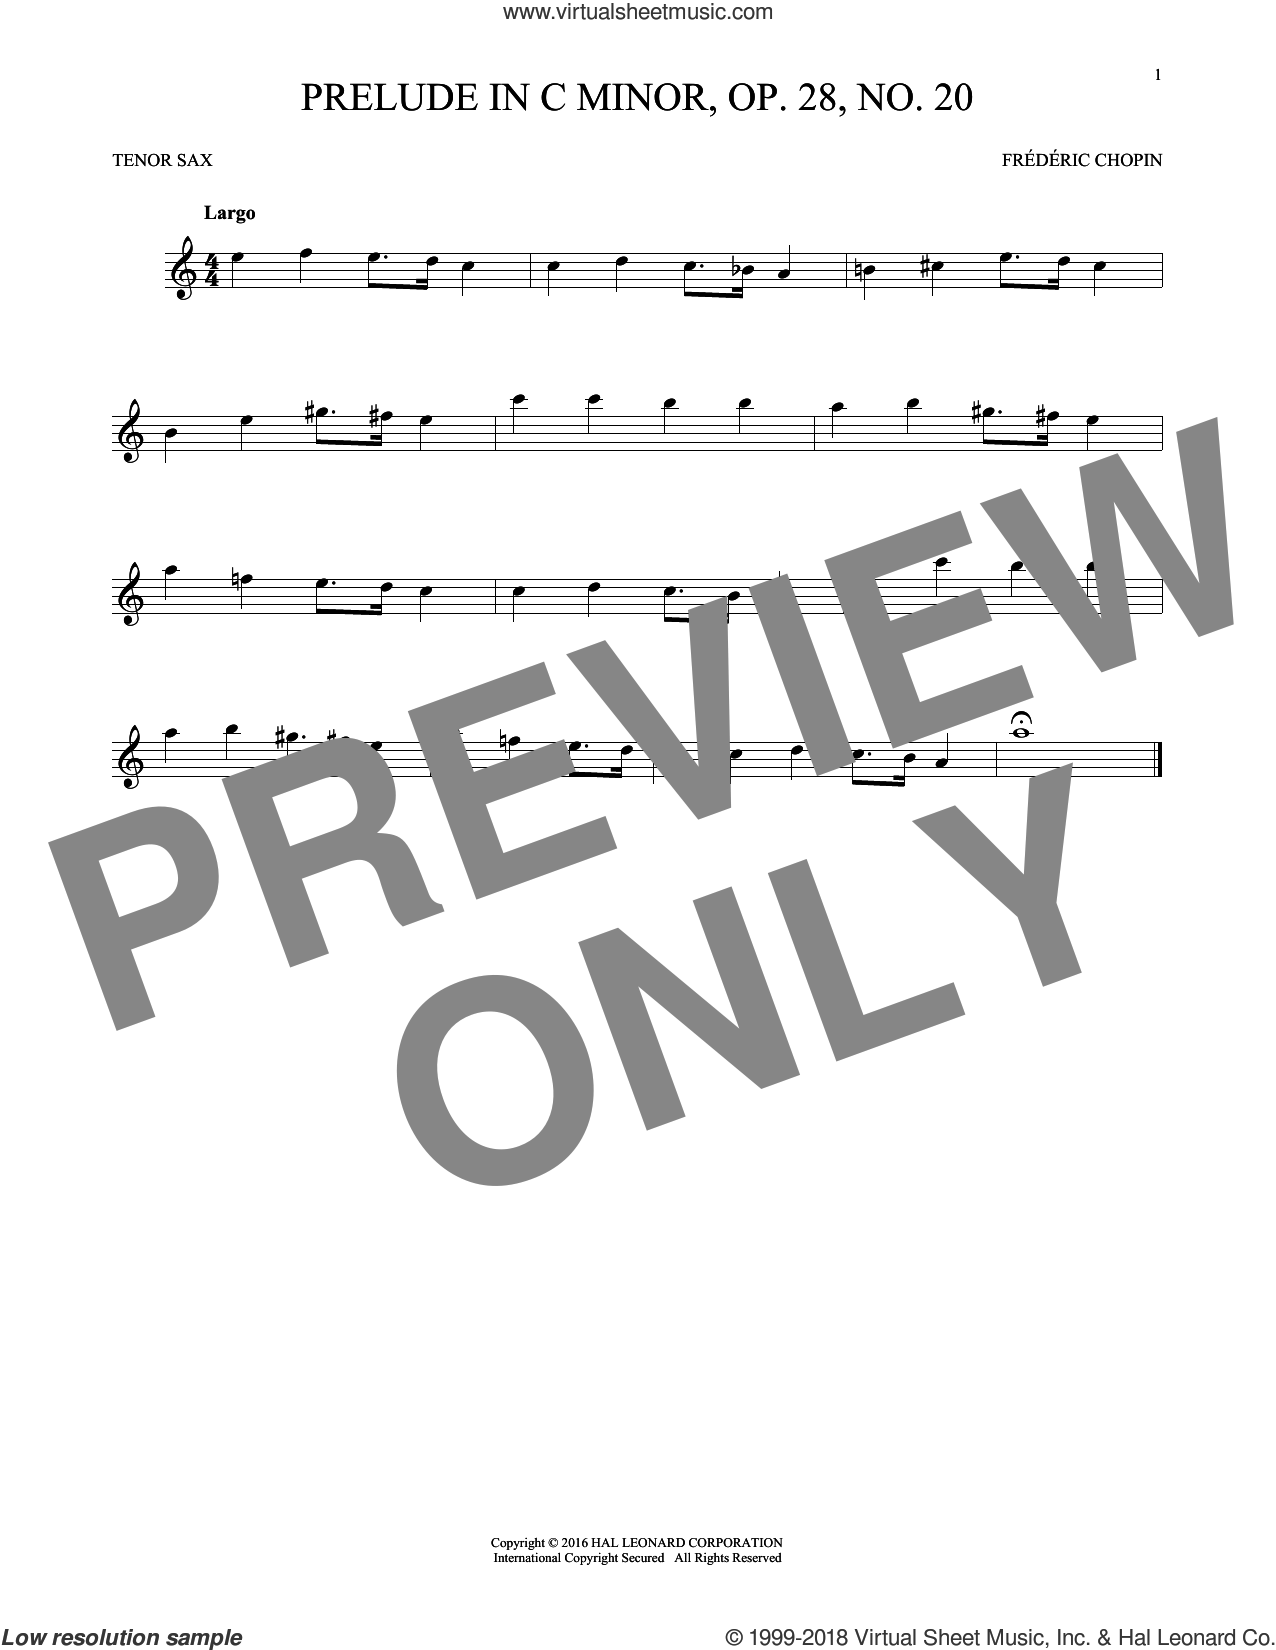 Prelude, Op. 28, No. 20 sheet music for tenor saxophone solo by Frederic Chopin, classical score, intermediate skill level